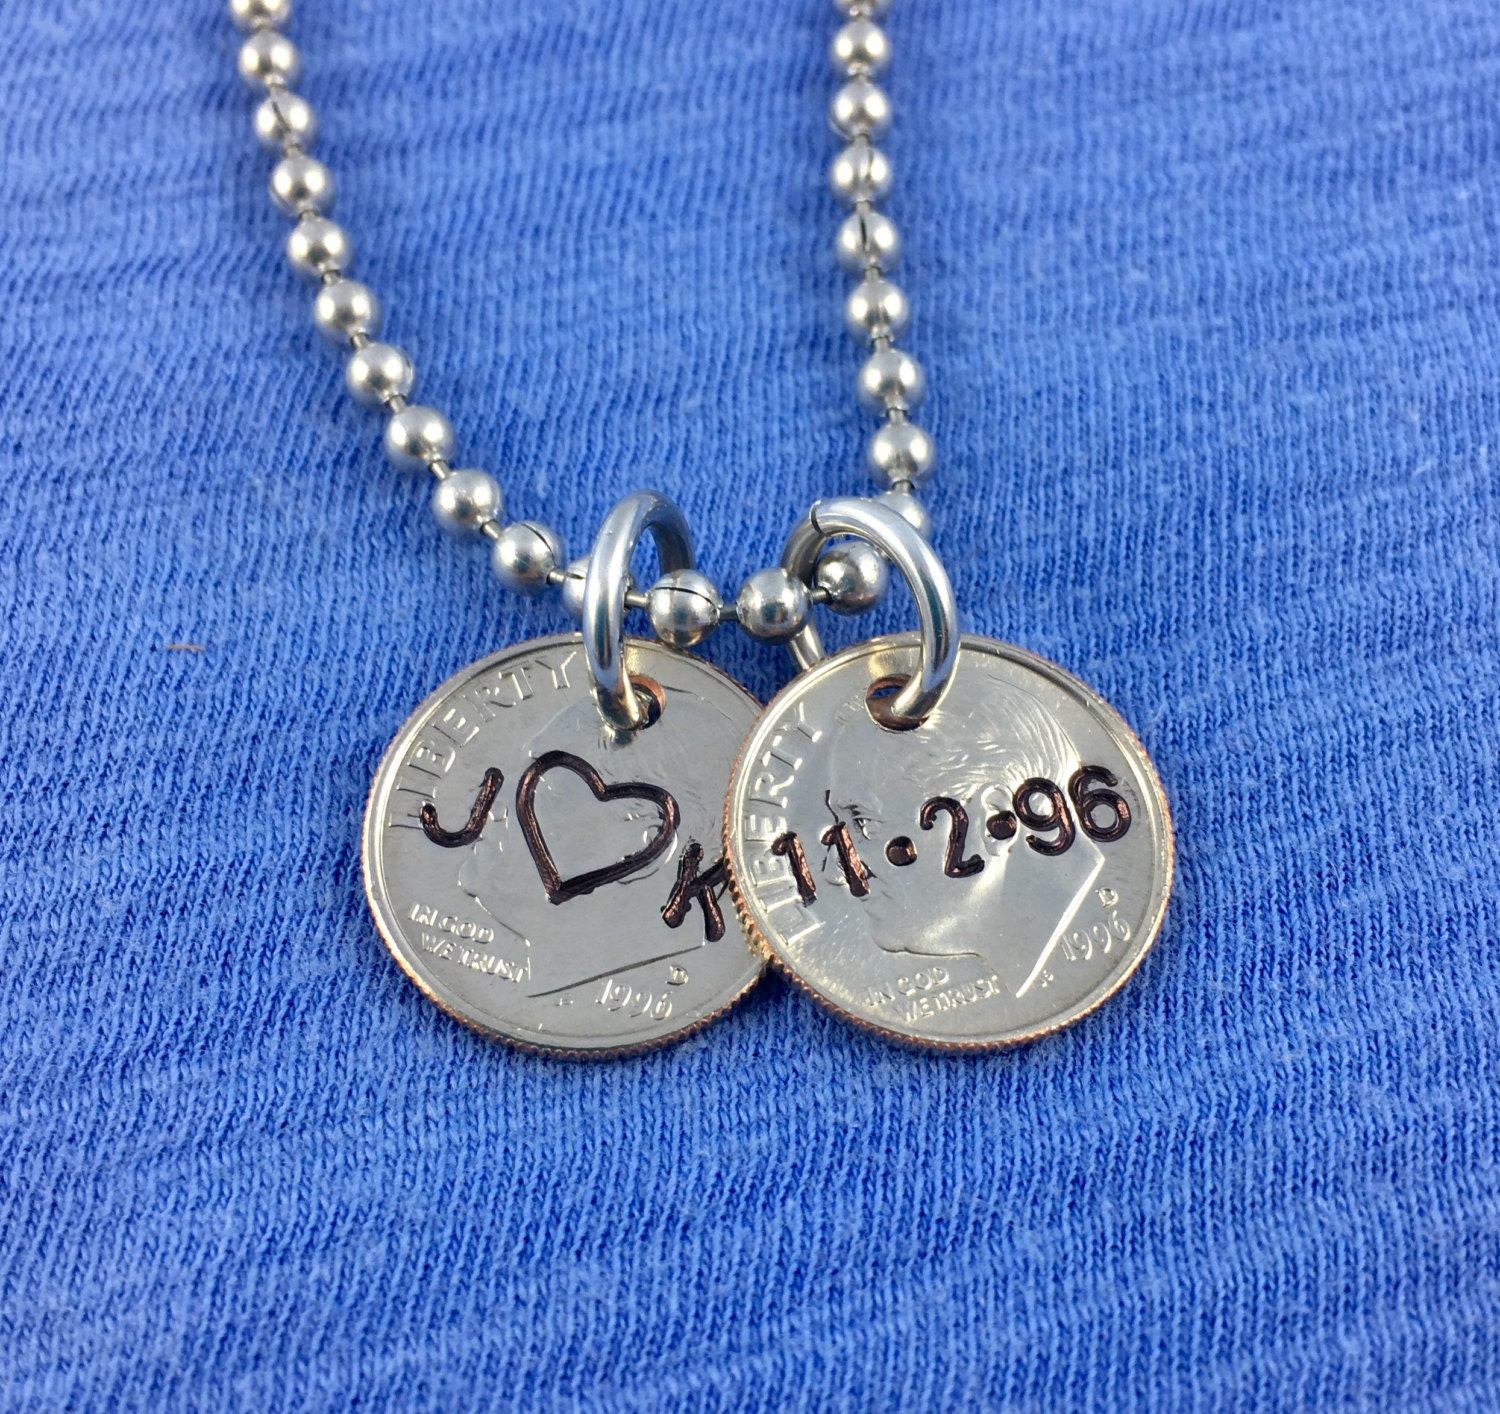 20 Years Wedding Anniversary Gifts: 20 Year Wedding Anniversary Gift For Him By